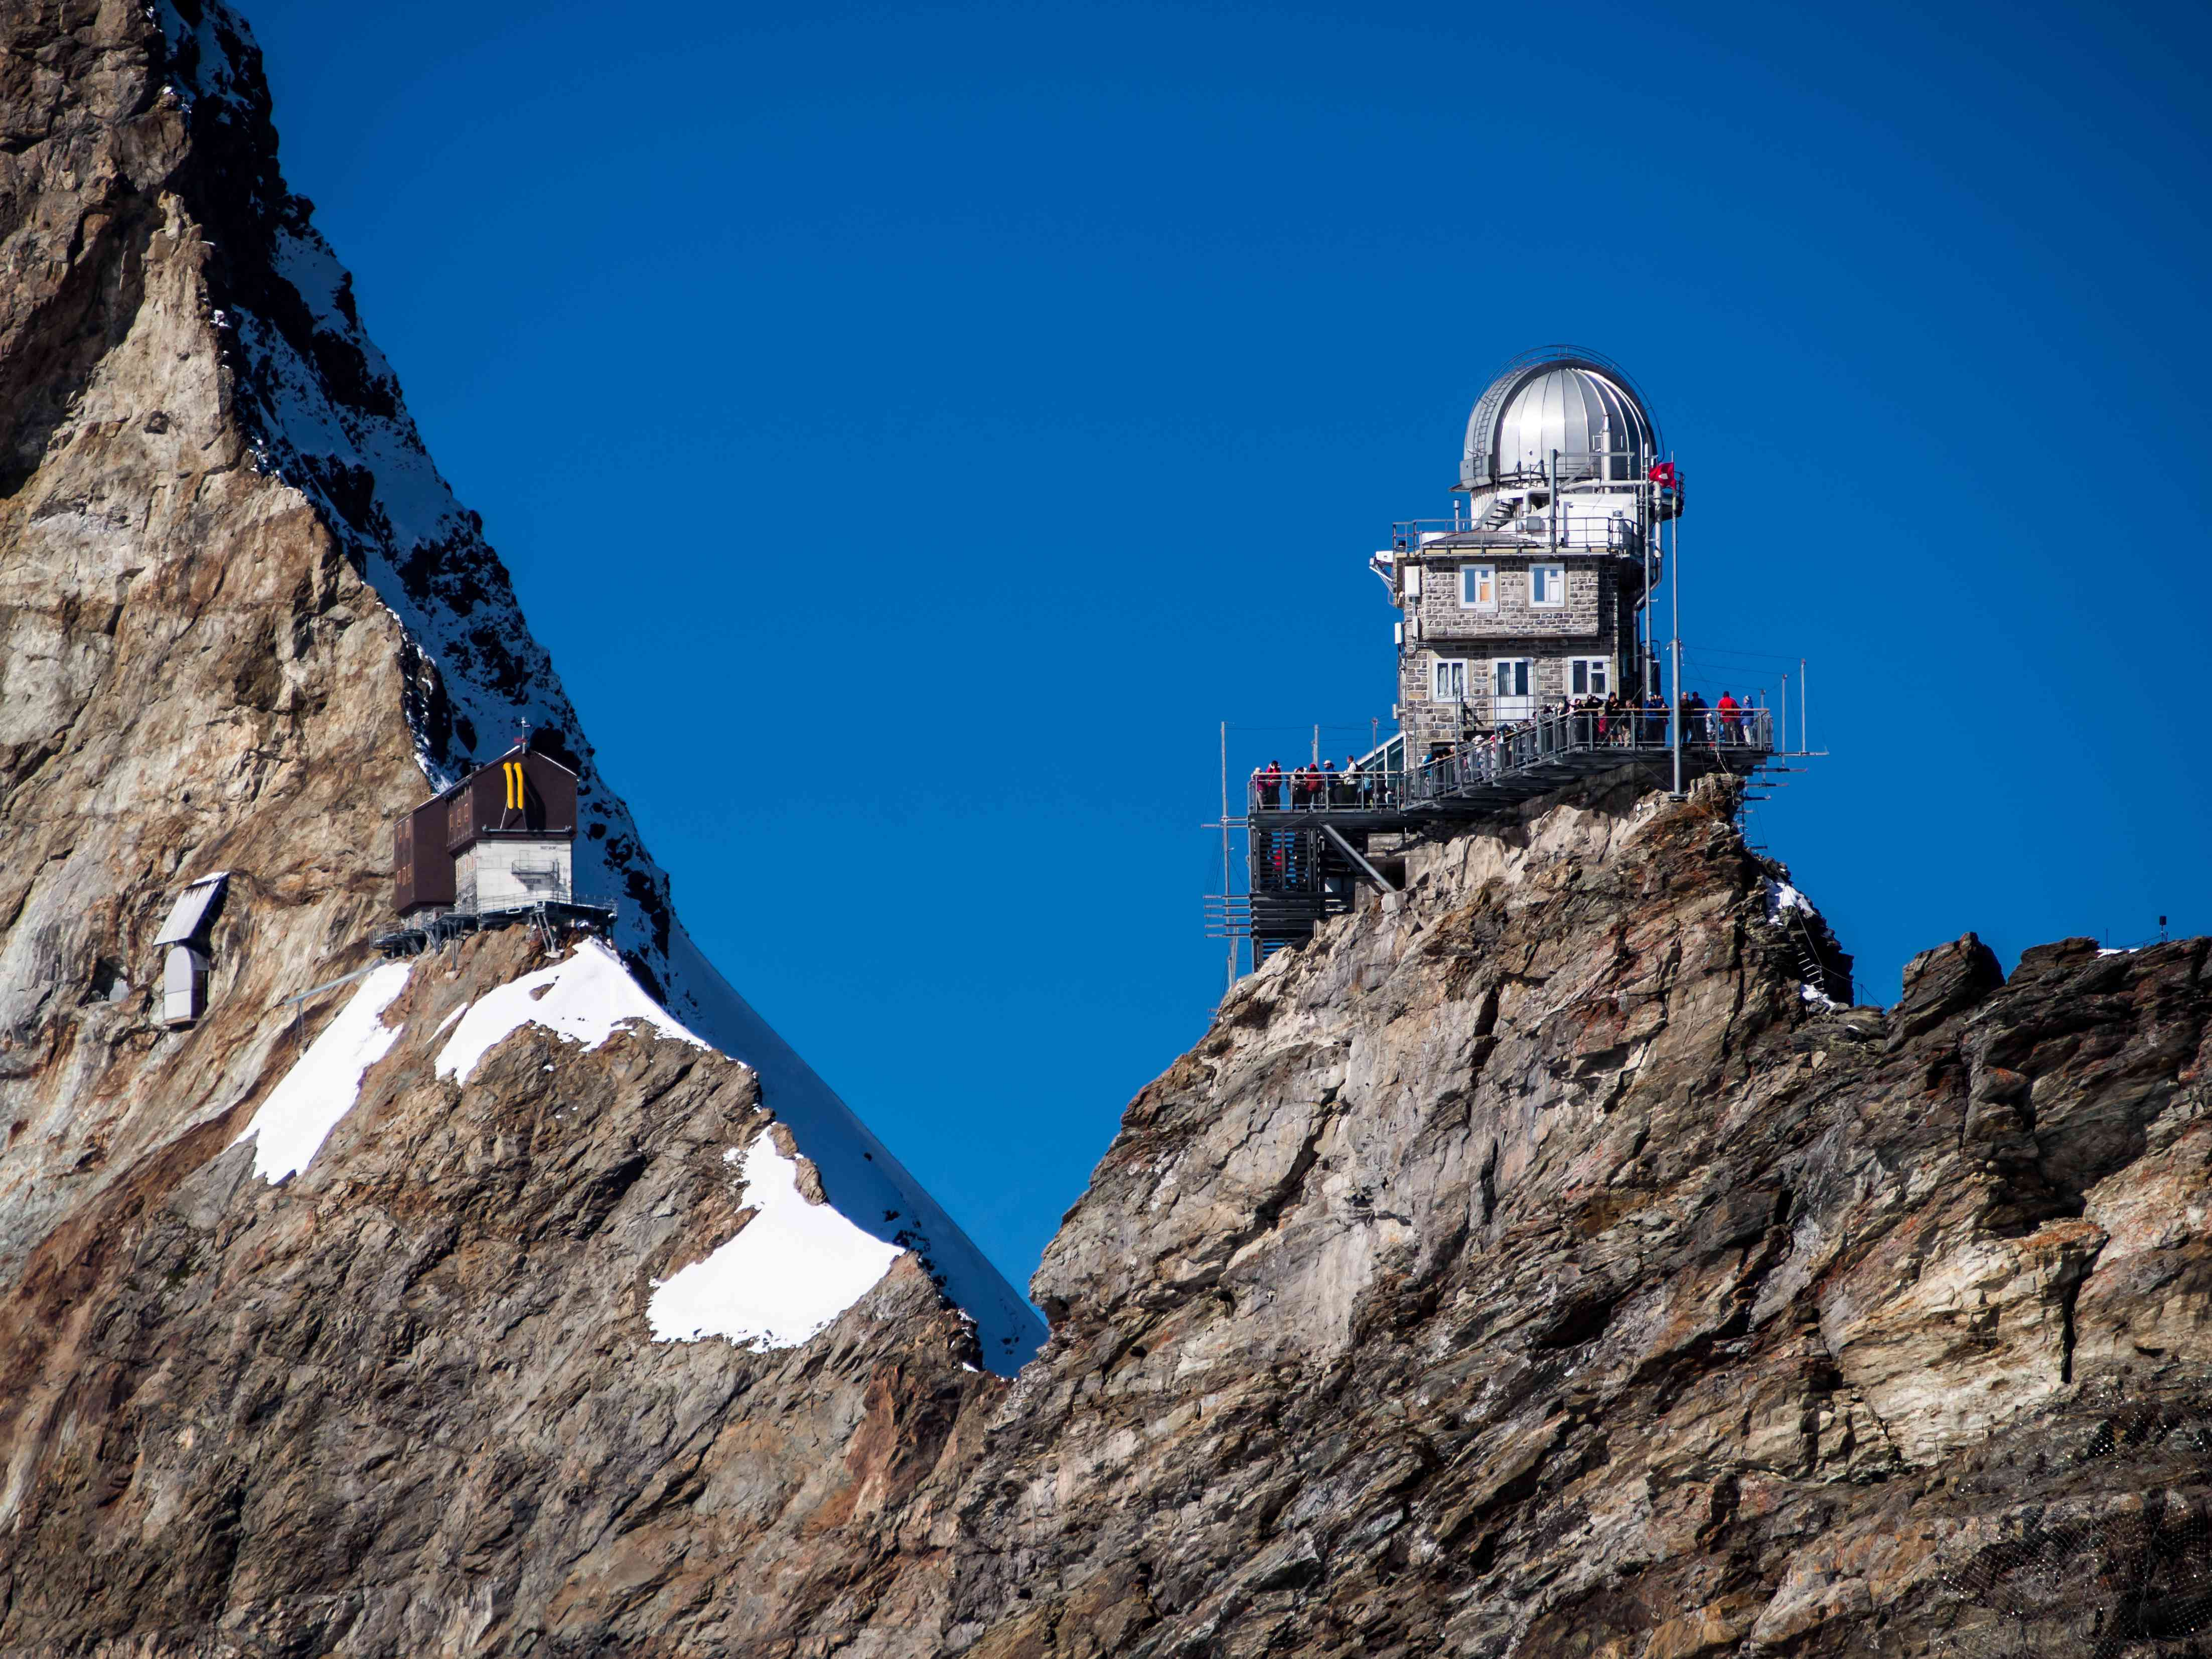 Sphinx Observatory on the steep slopes of the Swiss Alps.